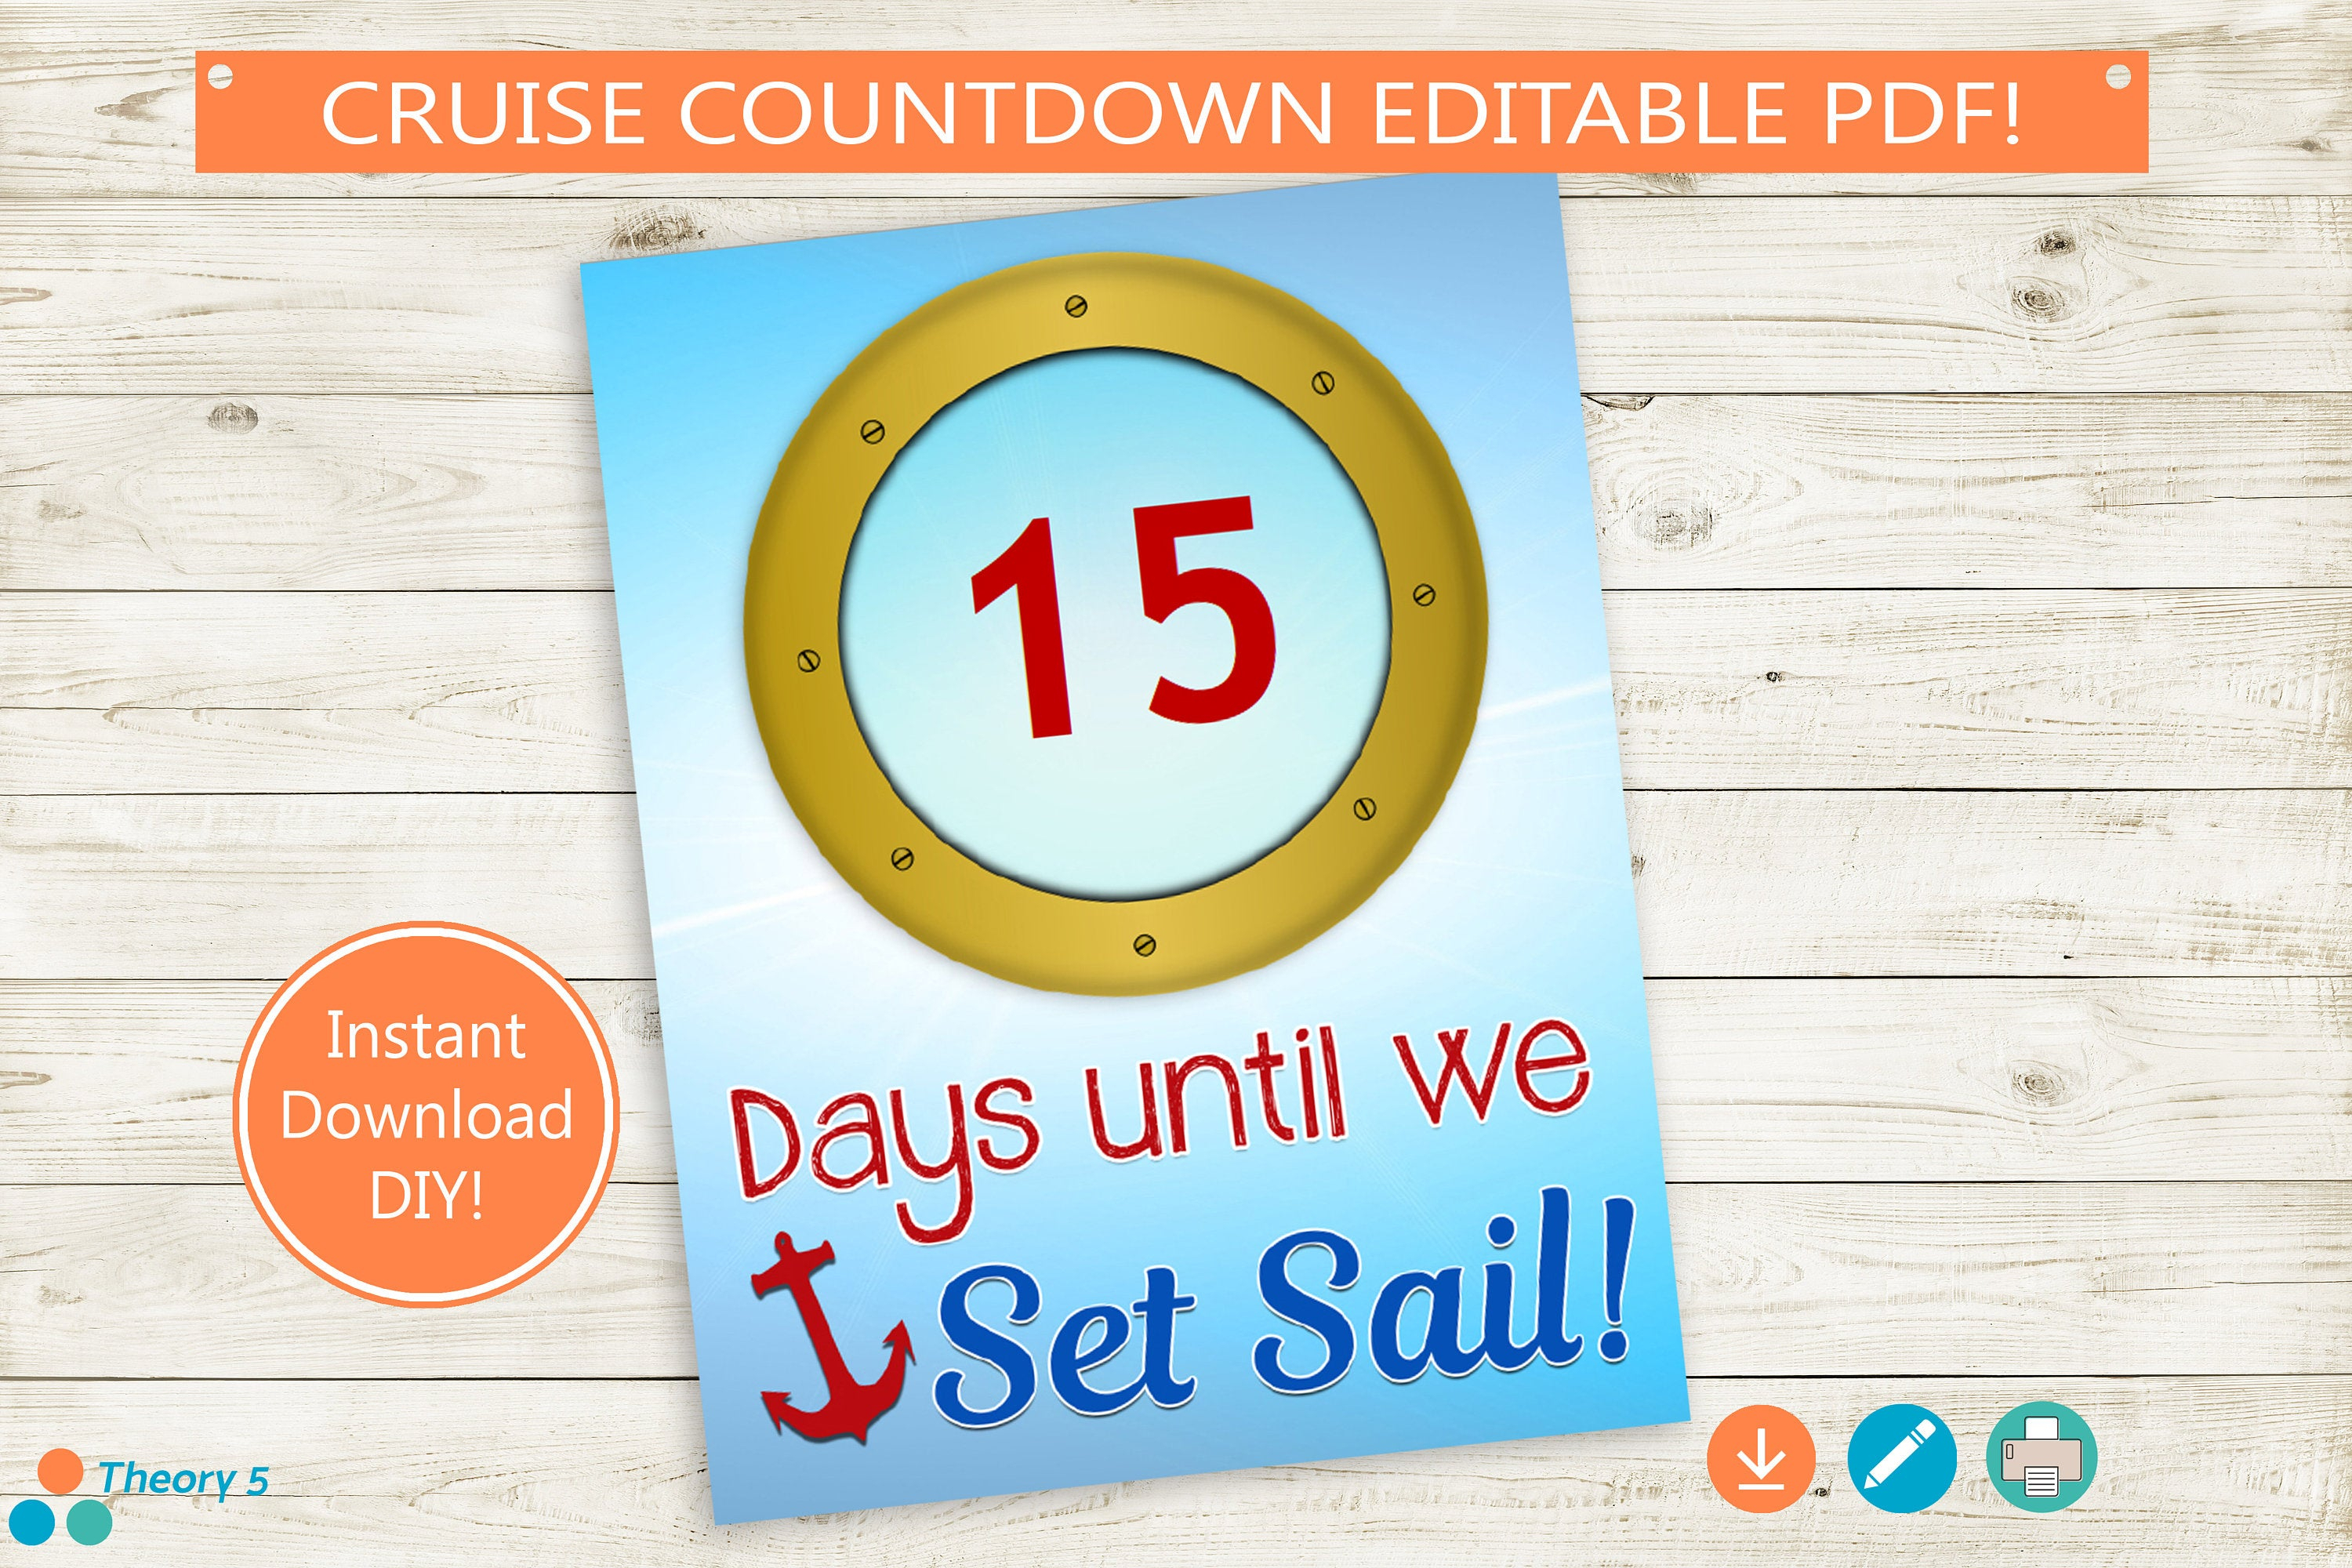 Cruise Vacation Countdown Printable // Editable Pdf // Instant Download,  Diy, Cruise Boat, Porthole, Print From Home, 8X10, 8.5X11, Tear Off